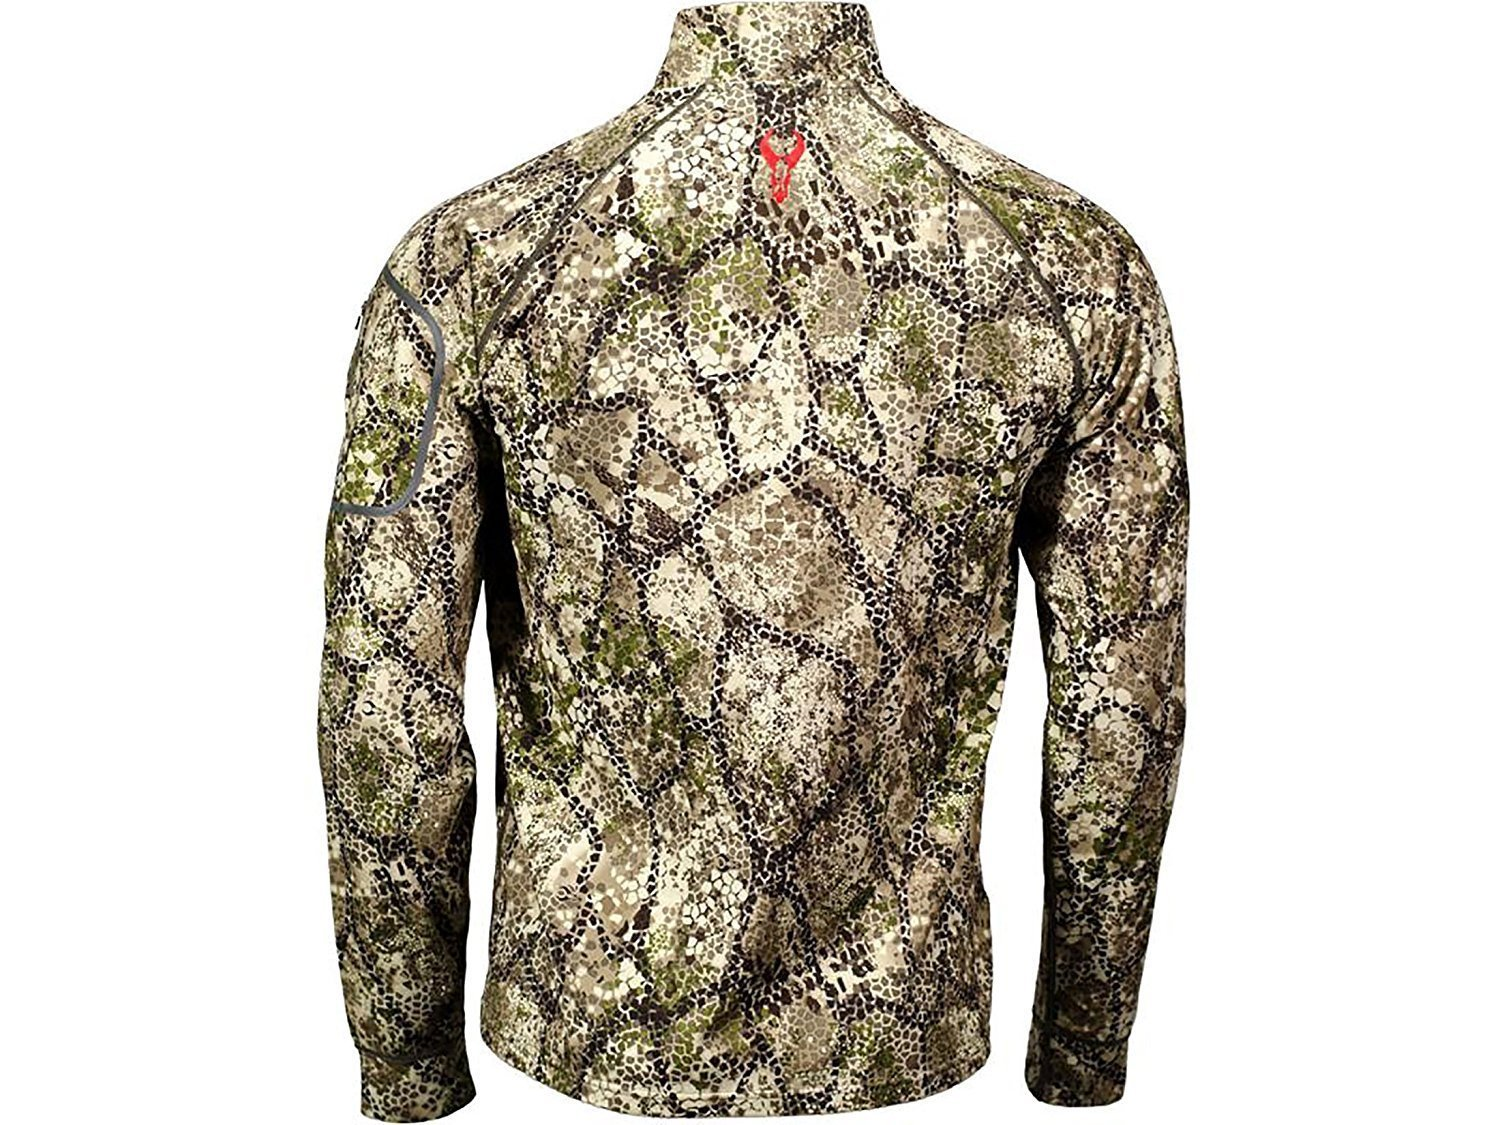 Badlands Mens Calor 1 4 Zip Base Layer Shirt Long Sleeve Polyester Approach Camo by